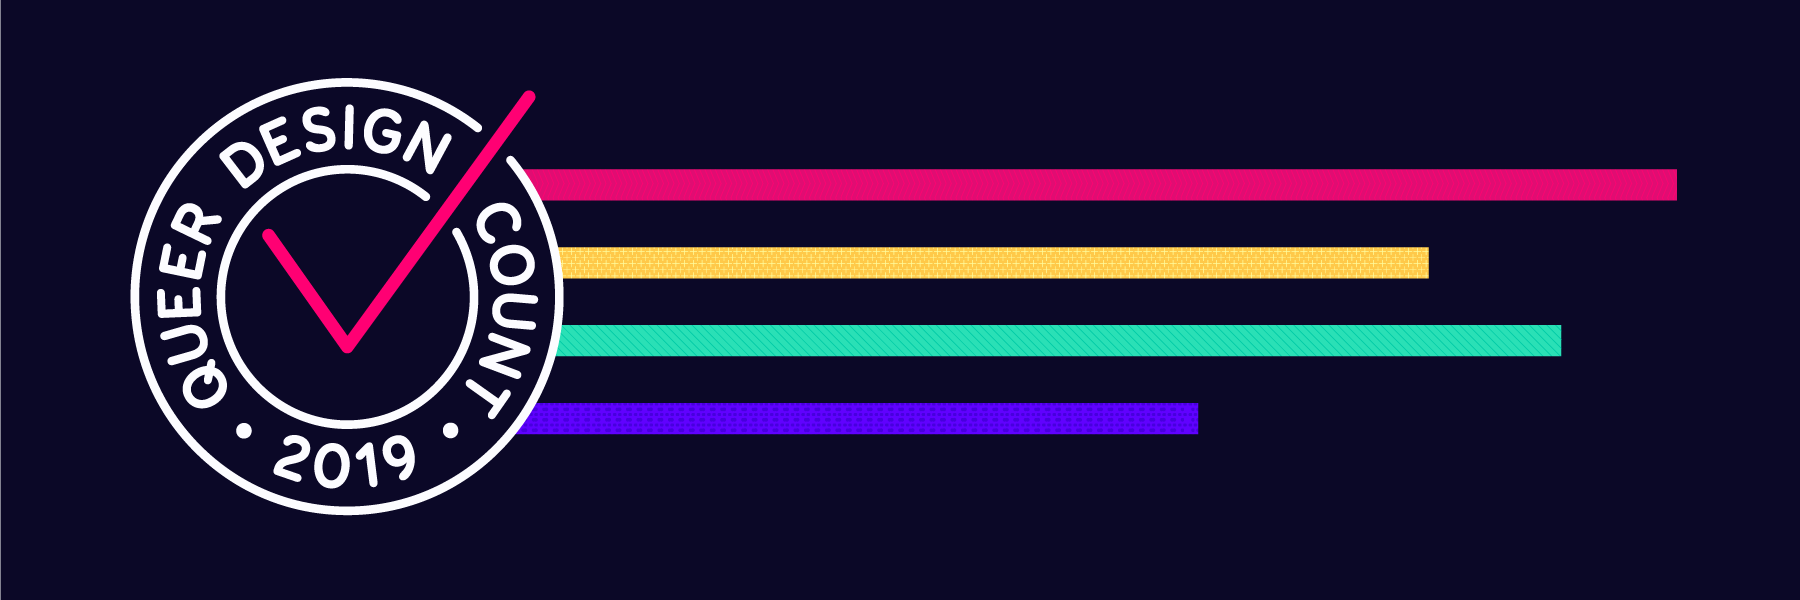 The queer design count 2019 banner